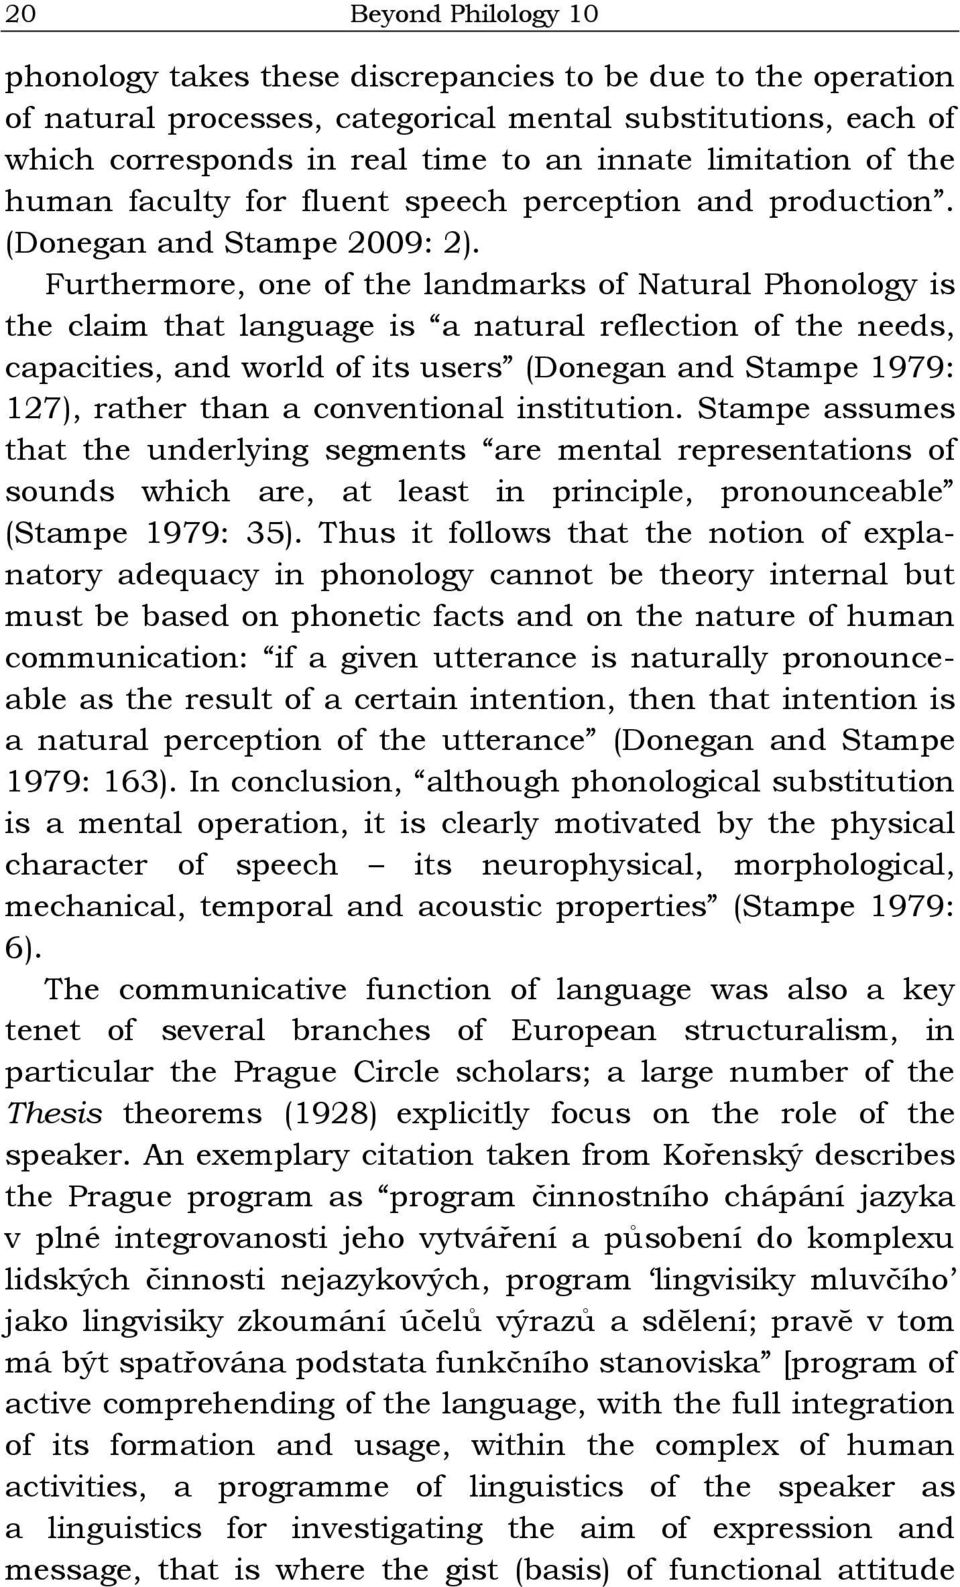 Furthermore, one of the landmarks of Natural Phonology is the claim that language is a natural reflection of the needs, capacities, and world of its users (Donegan and Stampe 1979: 127), rather than